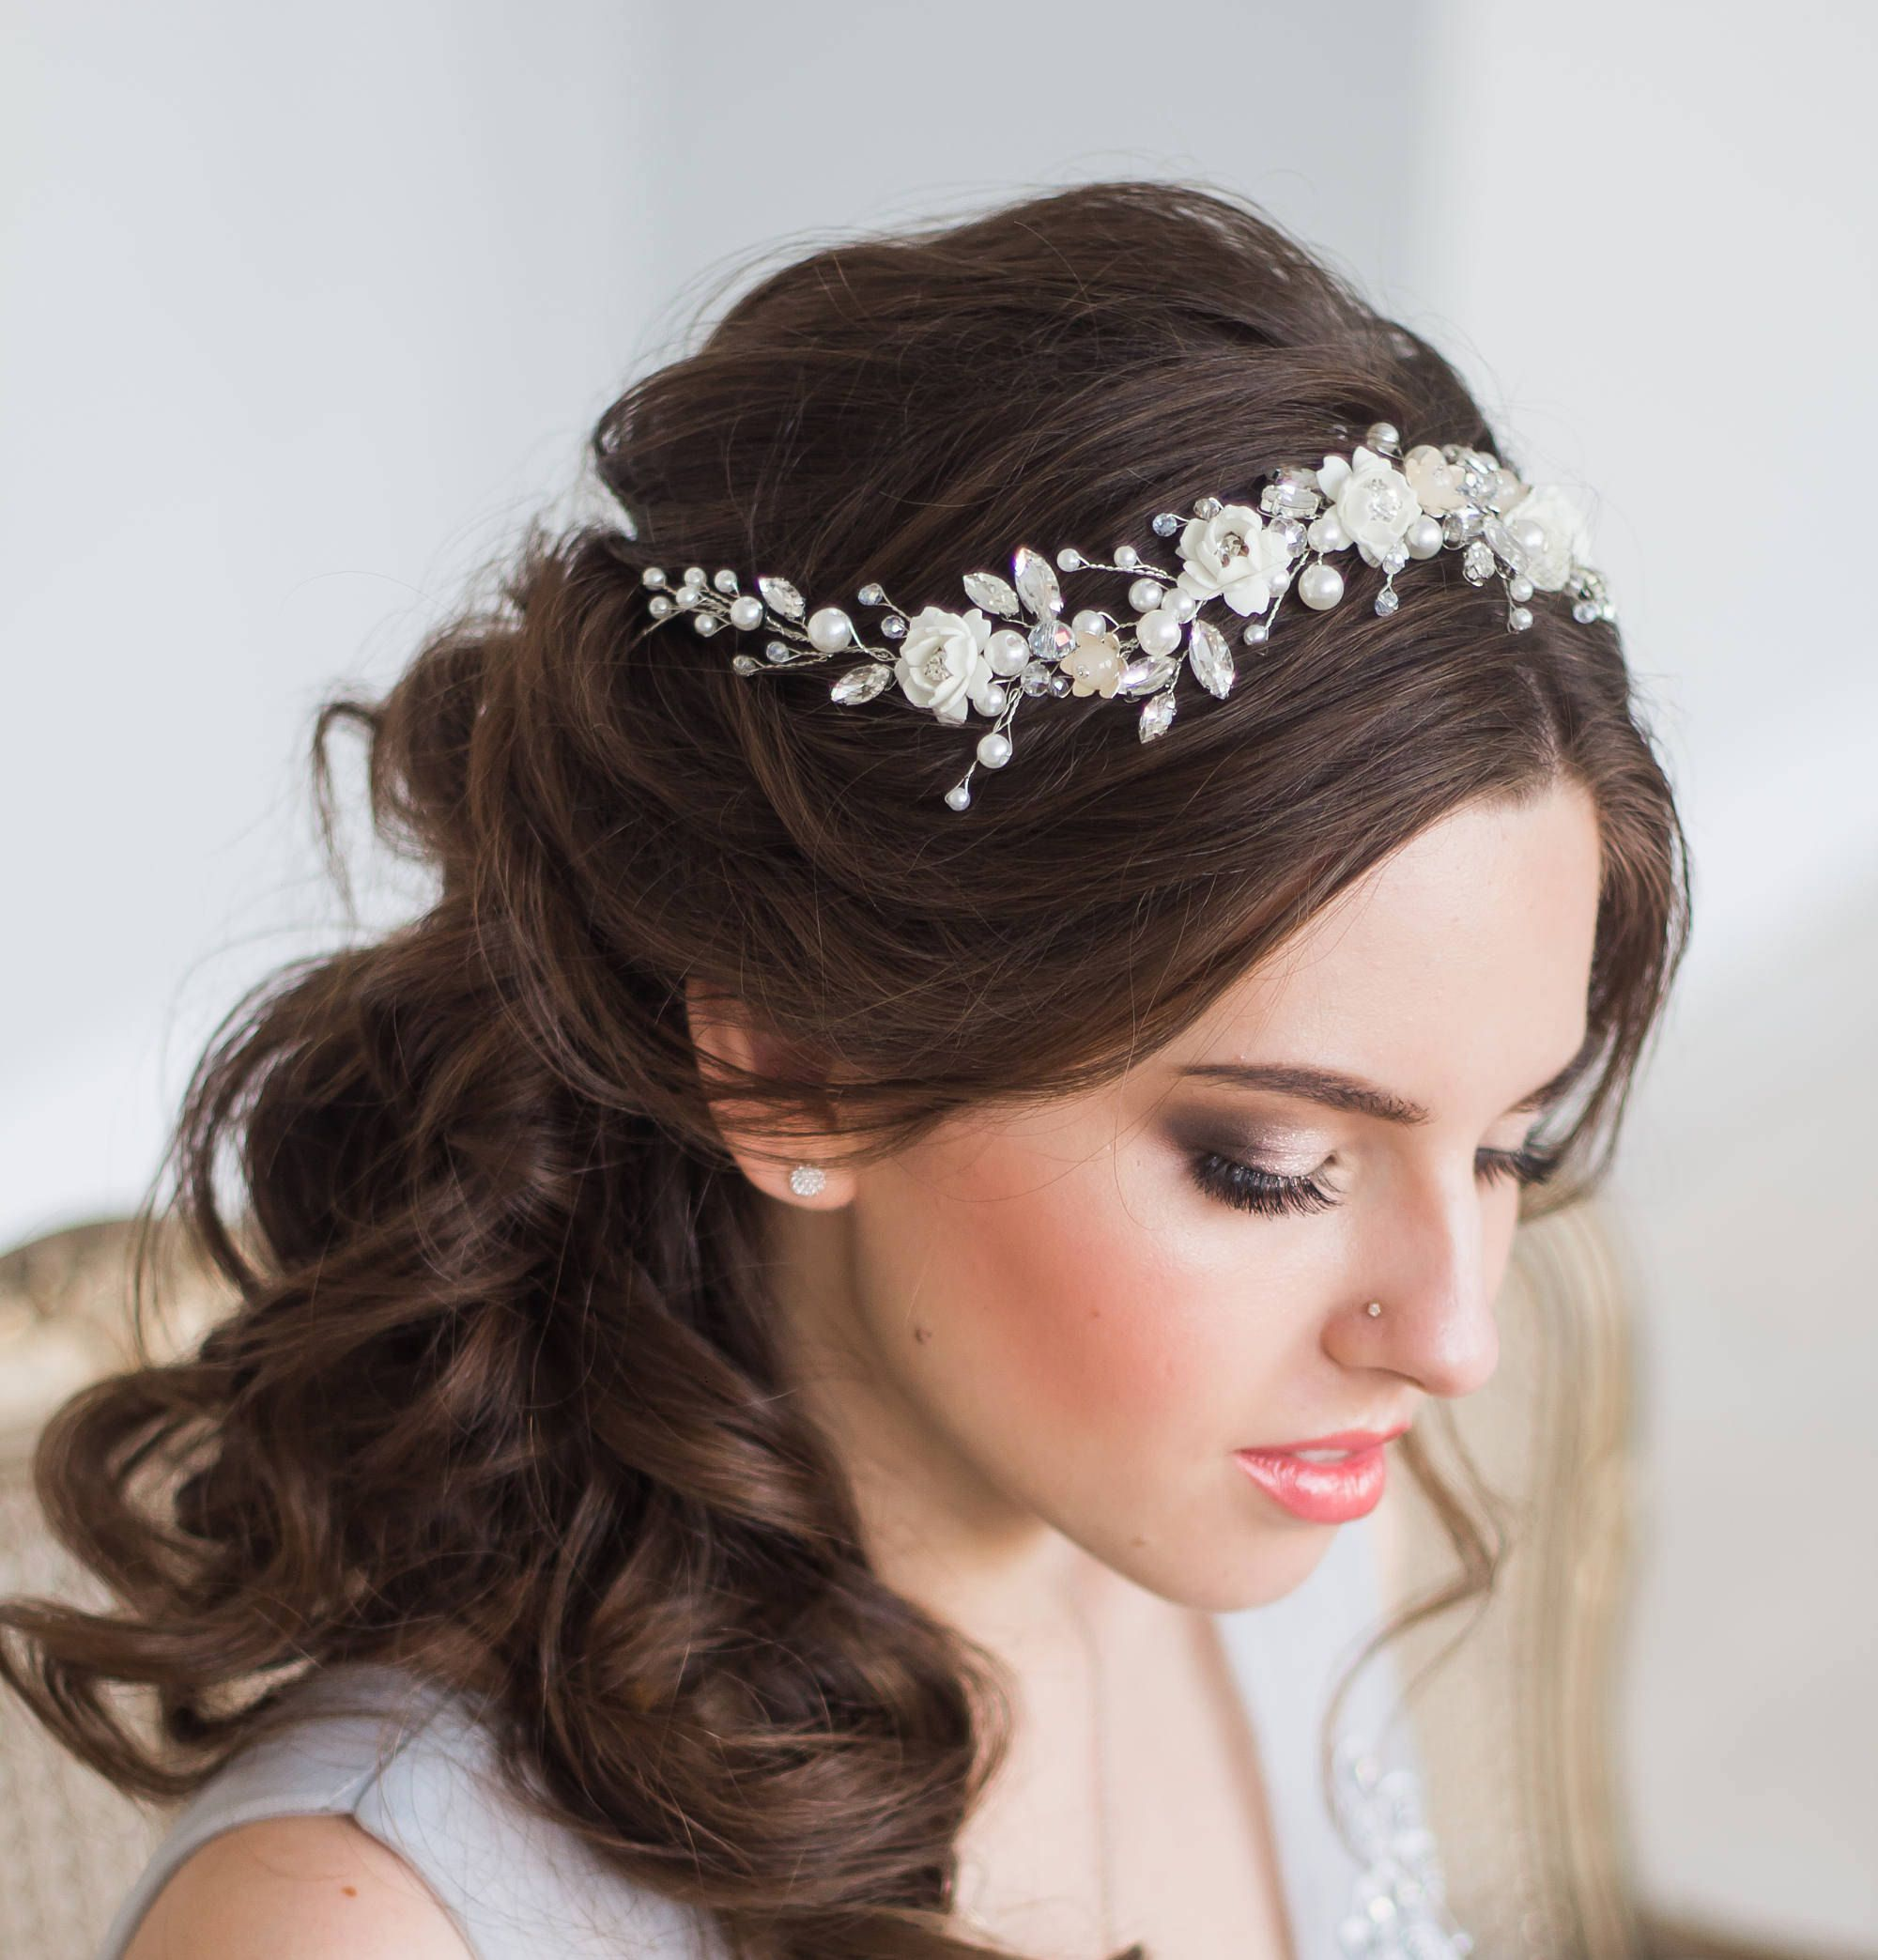 Wedding Hairstyle Crown: White Bridal Hair Tiara ♥ Length: About 11.8 Inches (30 Cm